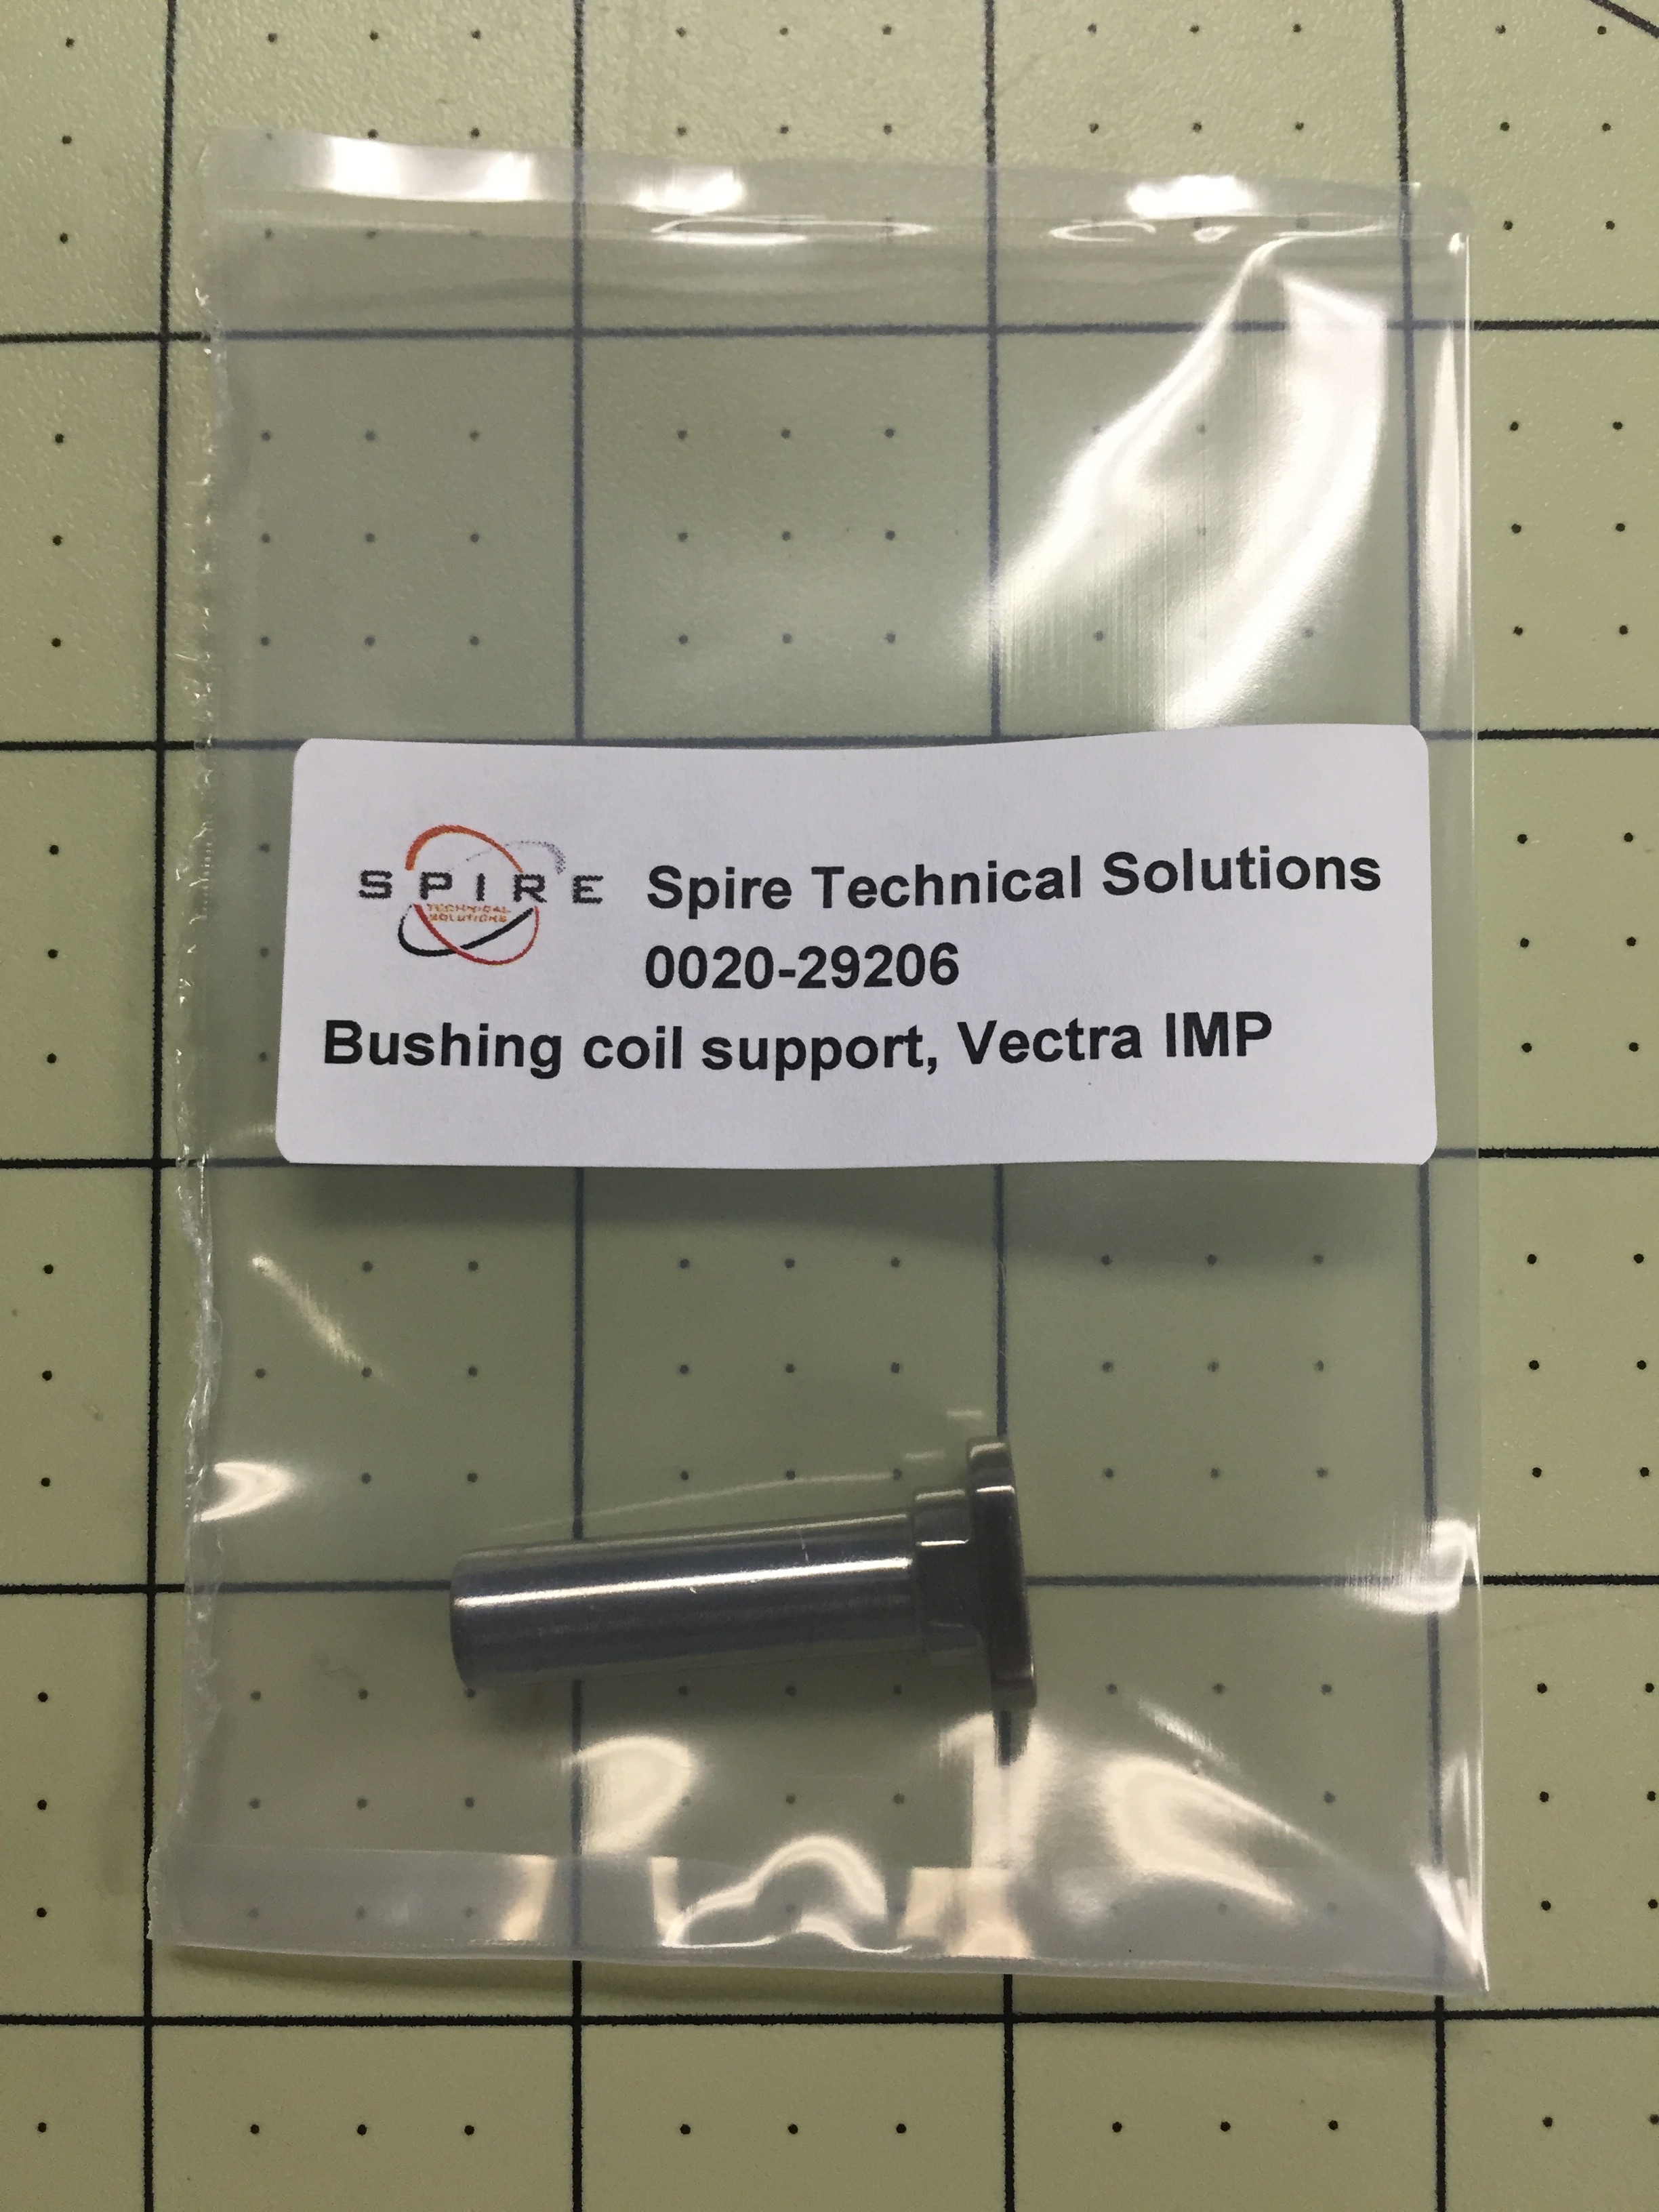 Bushing coil support, Vectra IMP